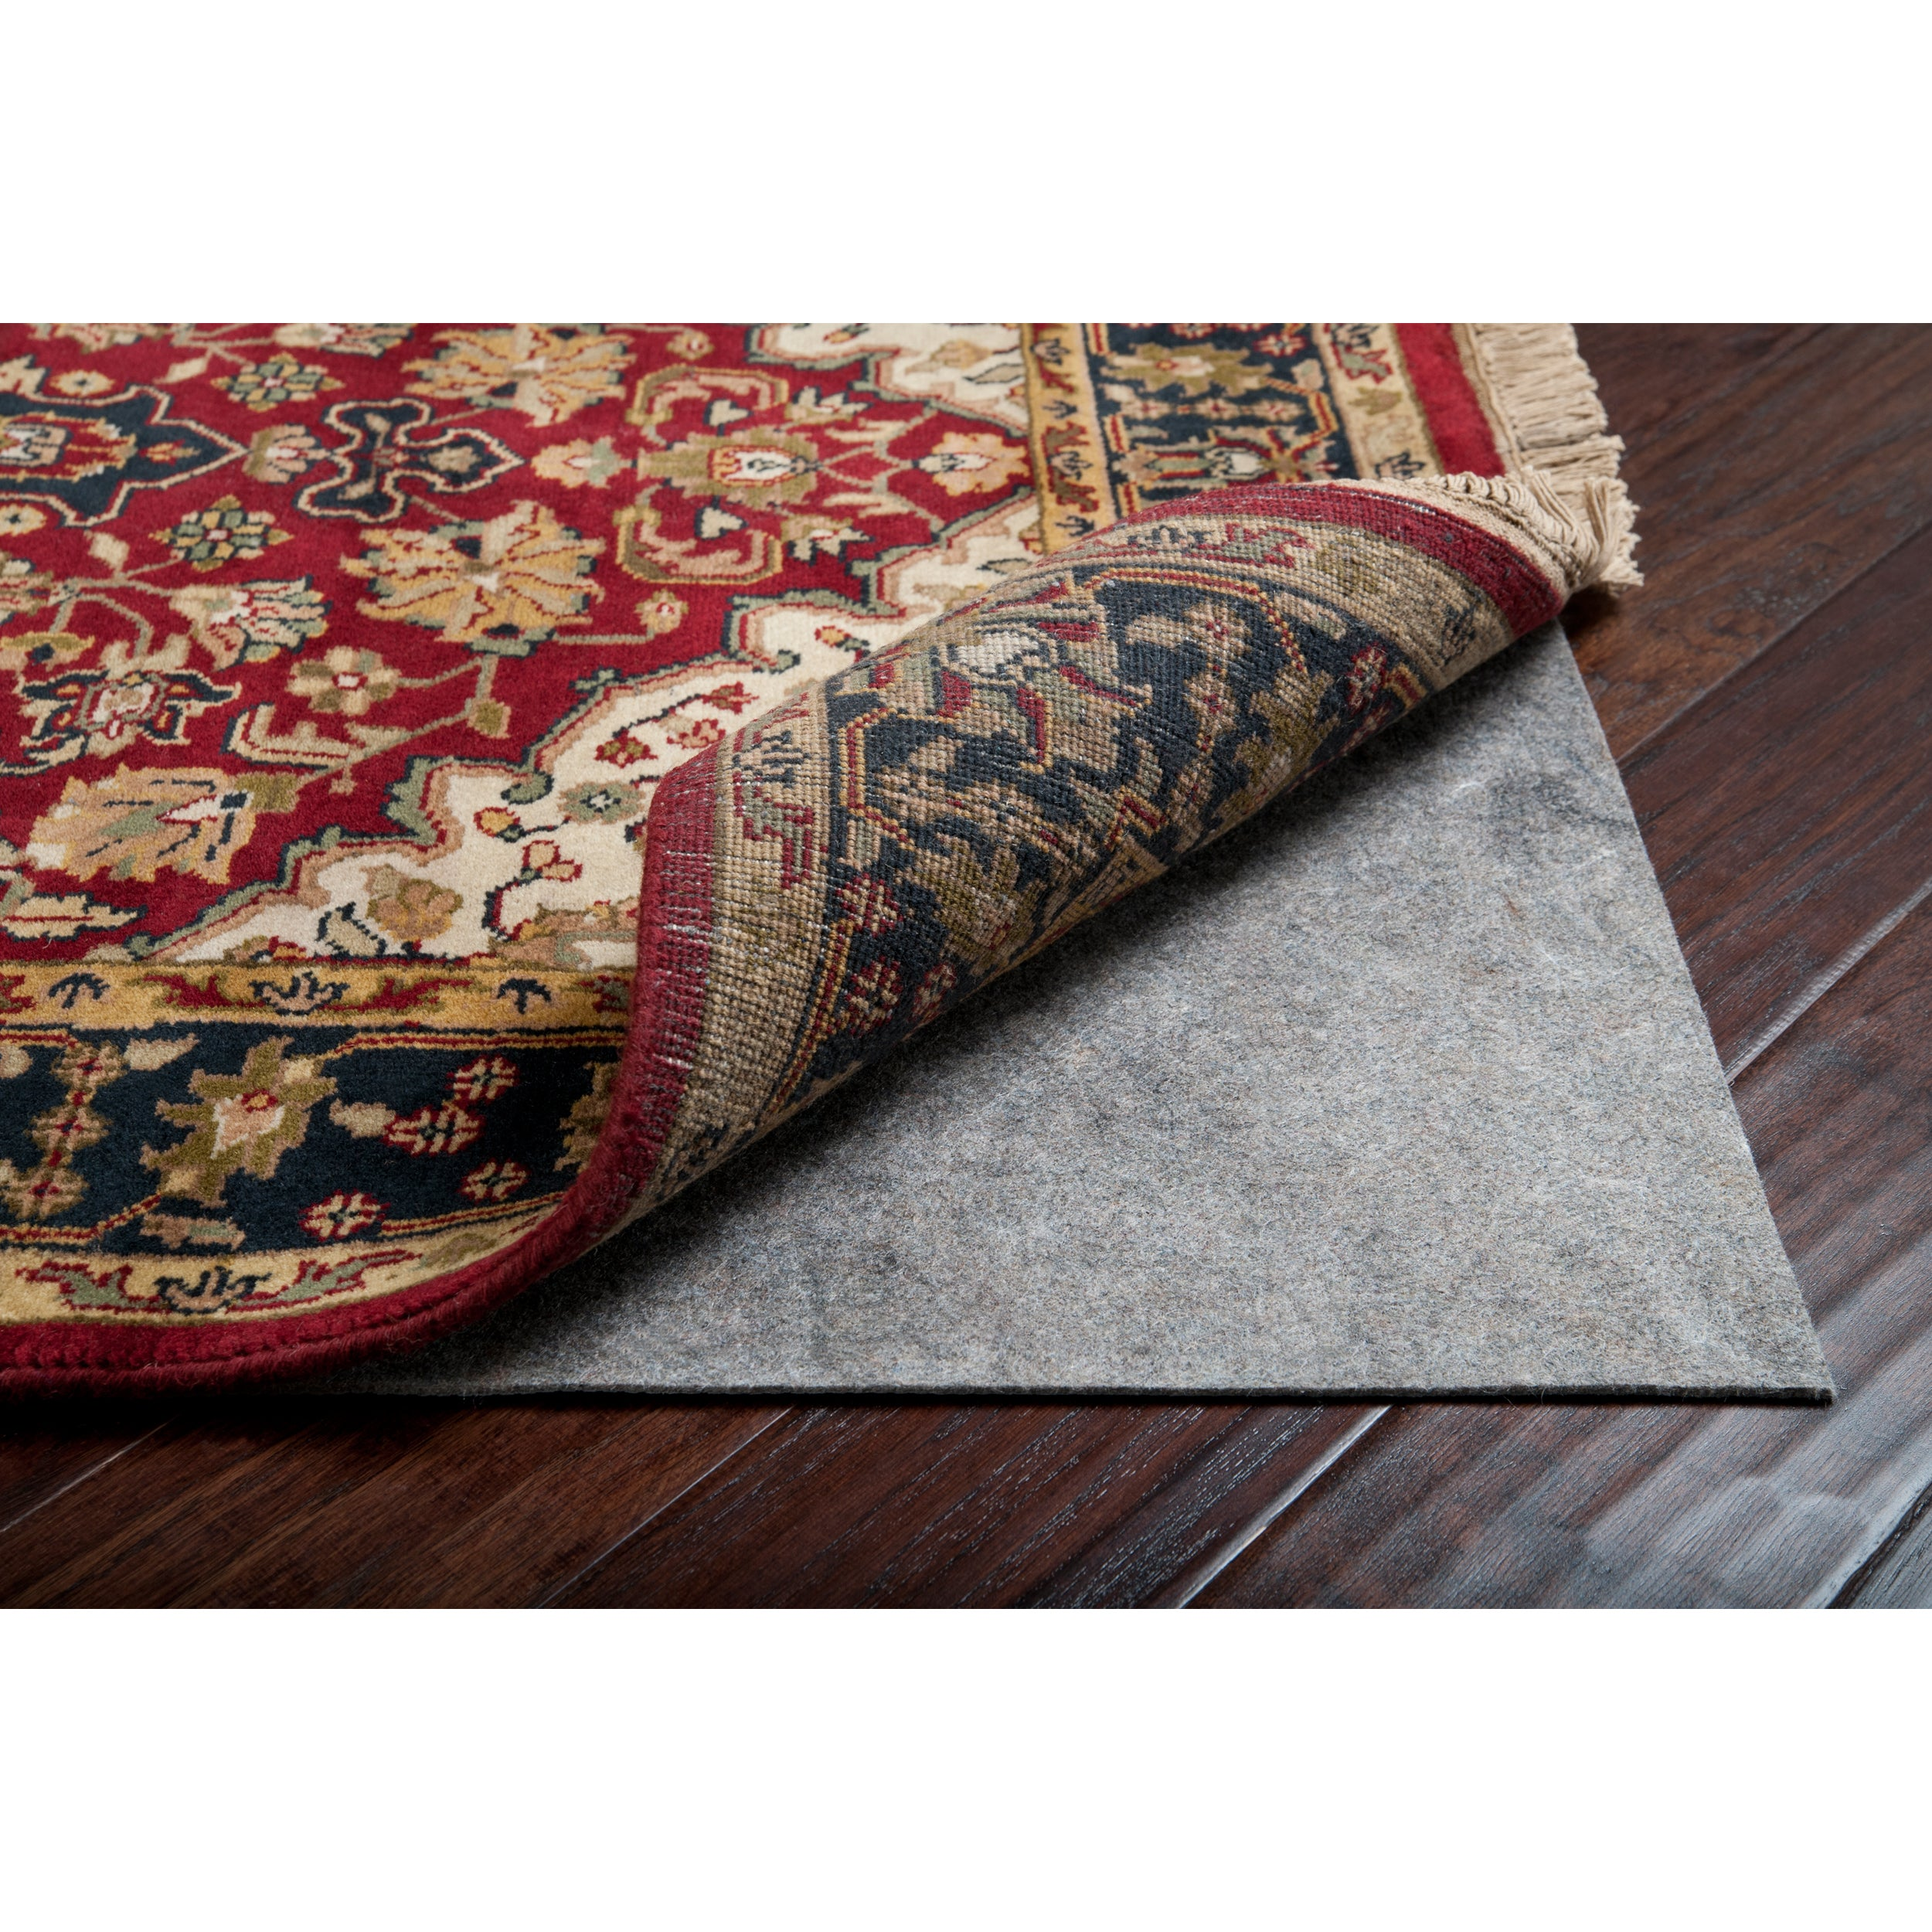 Rotell Rug Pad (8' x 11')